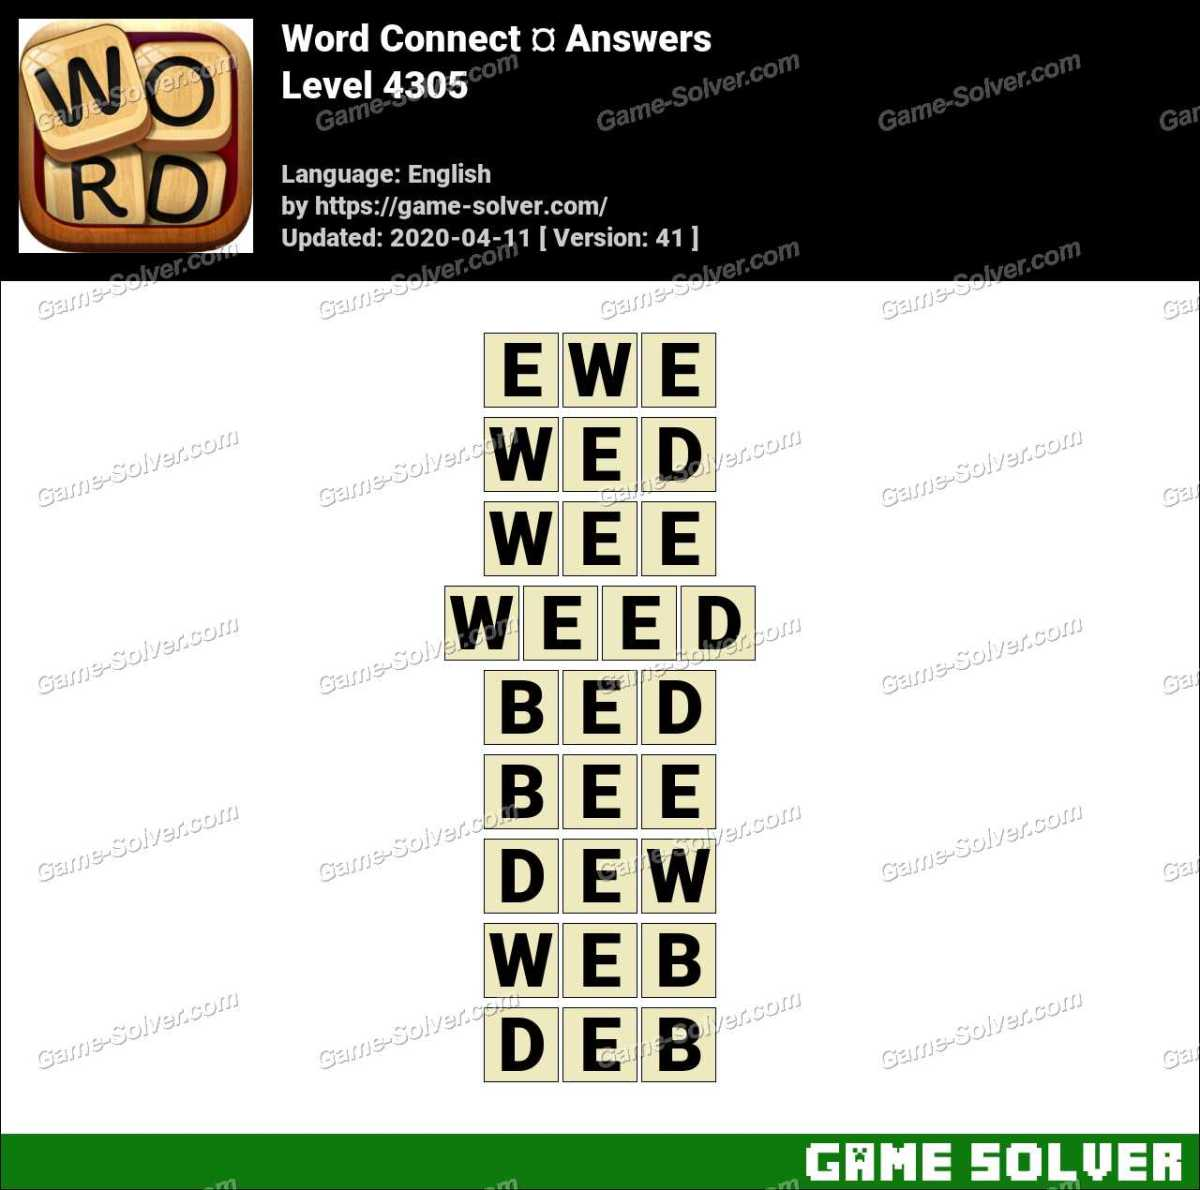 Word Connect Level 4305 Answers